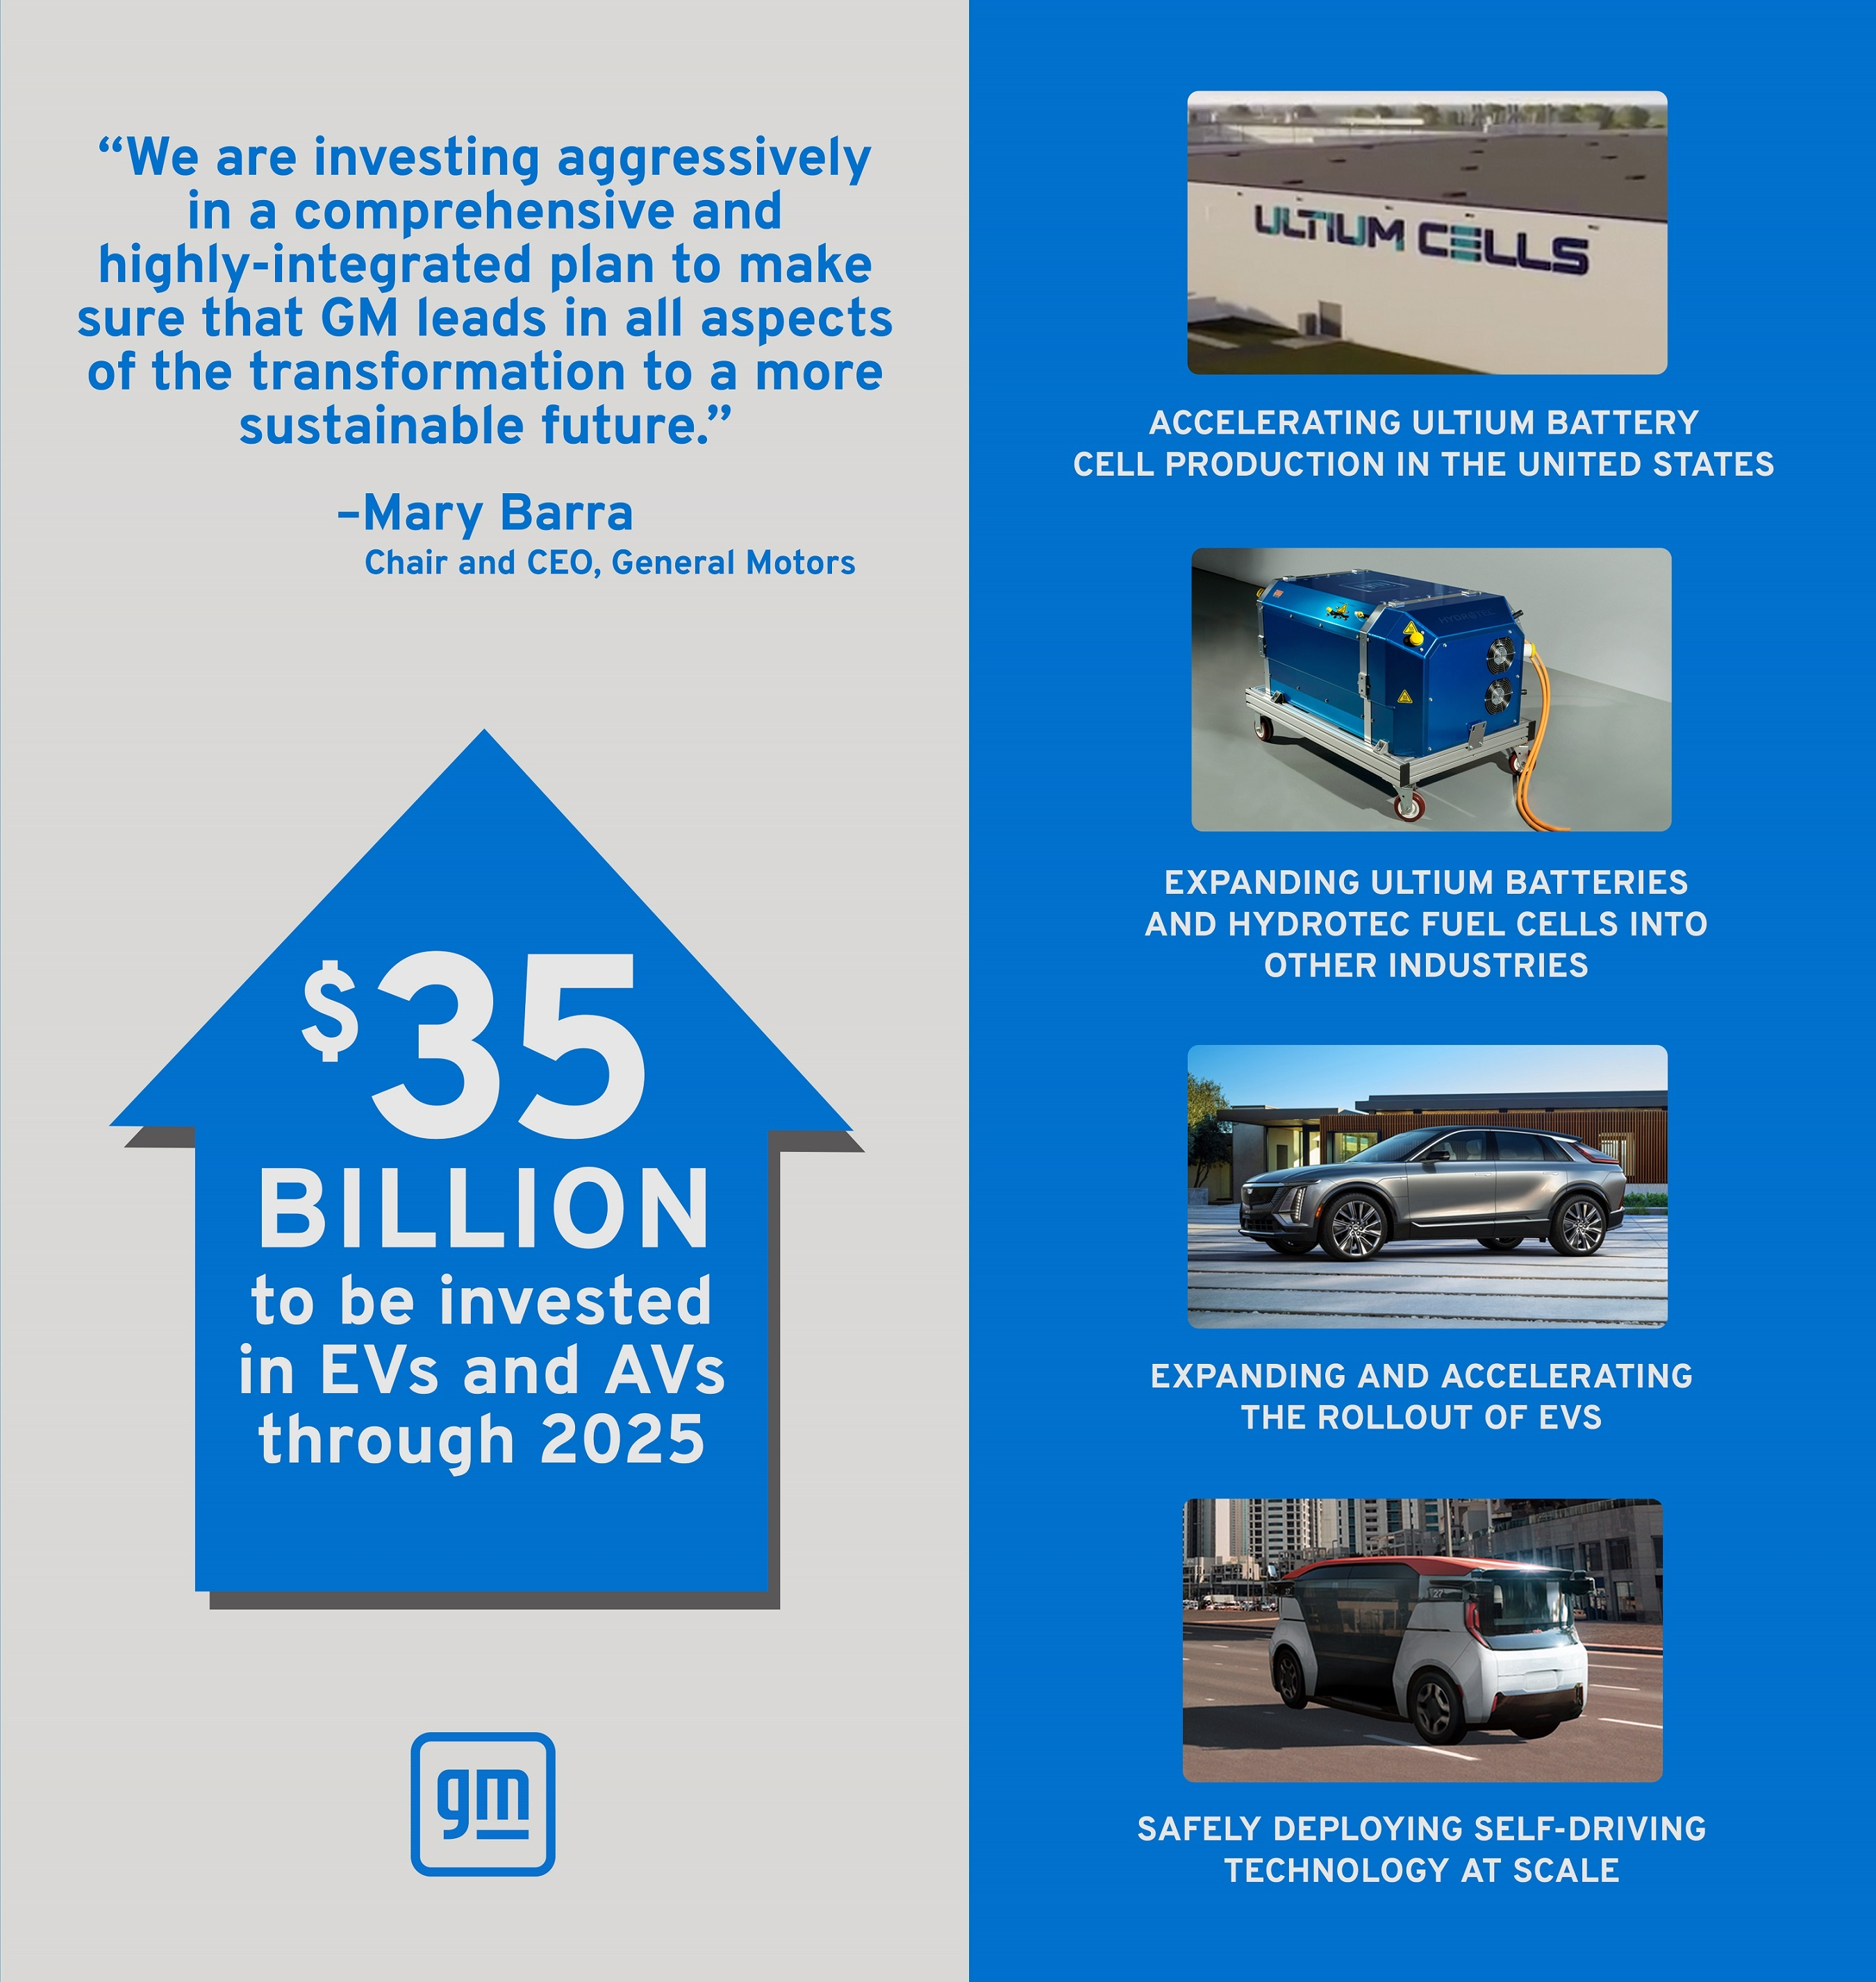 GM Will Boost EV and AV Investments to $35 Billion Through 2025